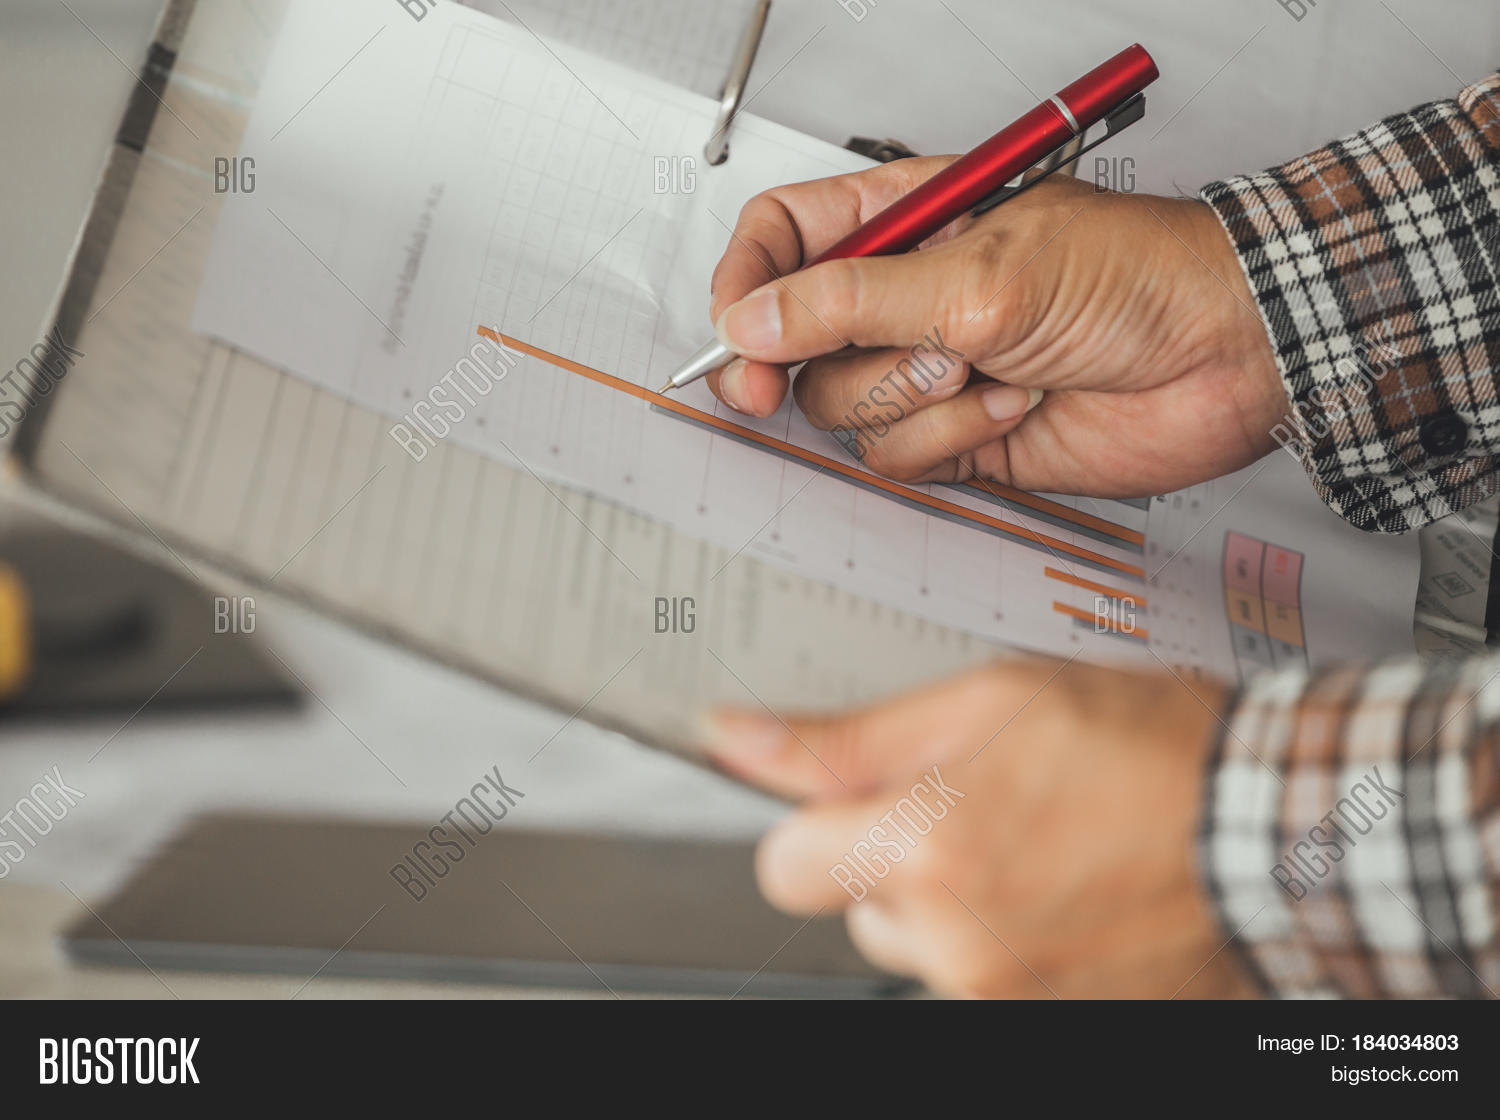 Management consulting engineers image photo bigstock management consulting with engineers working with blueprint and drawing on work table in for management business malvernweather Choice Image